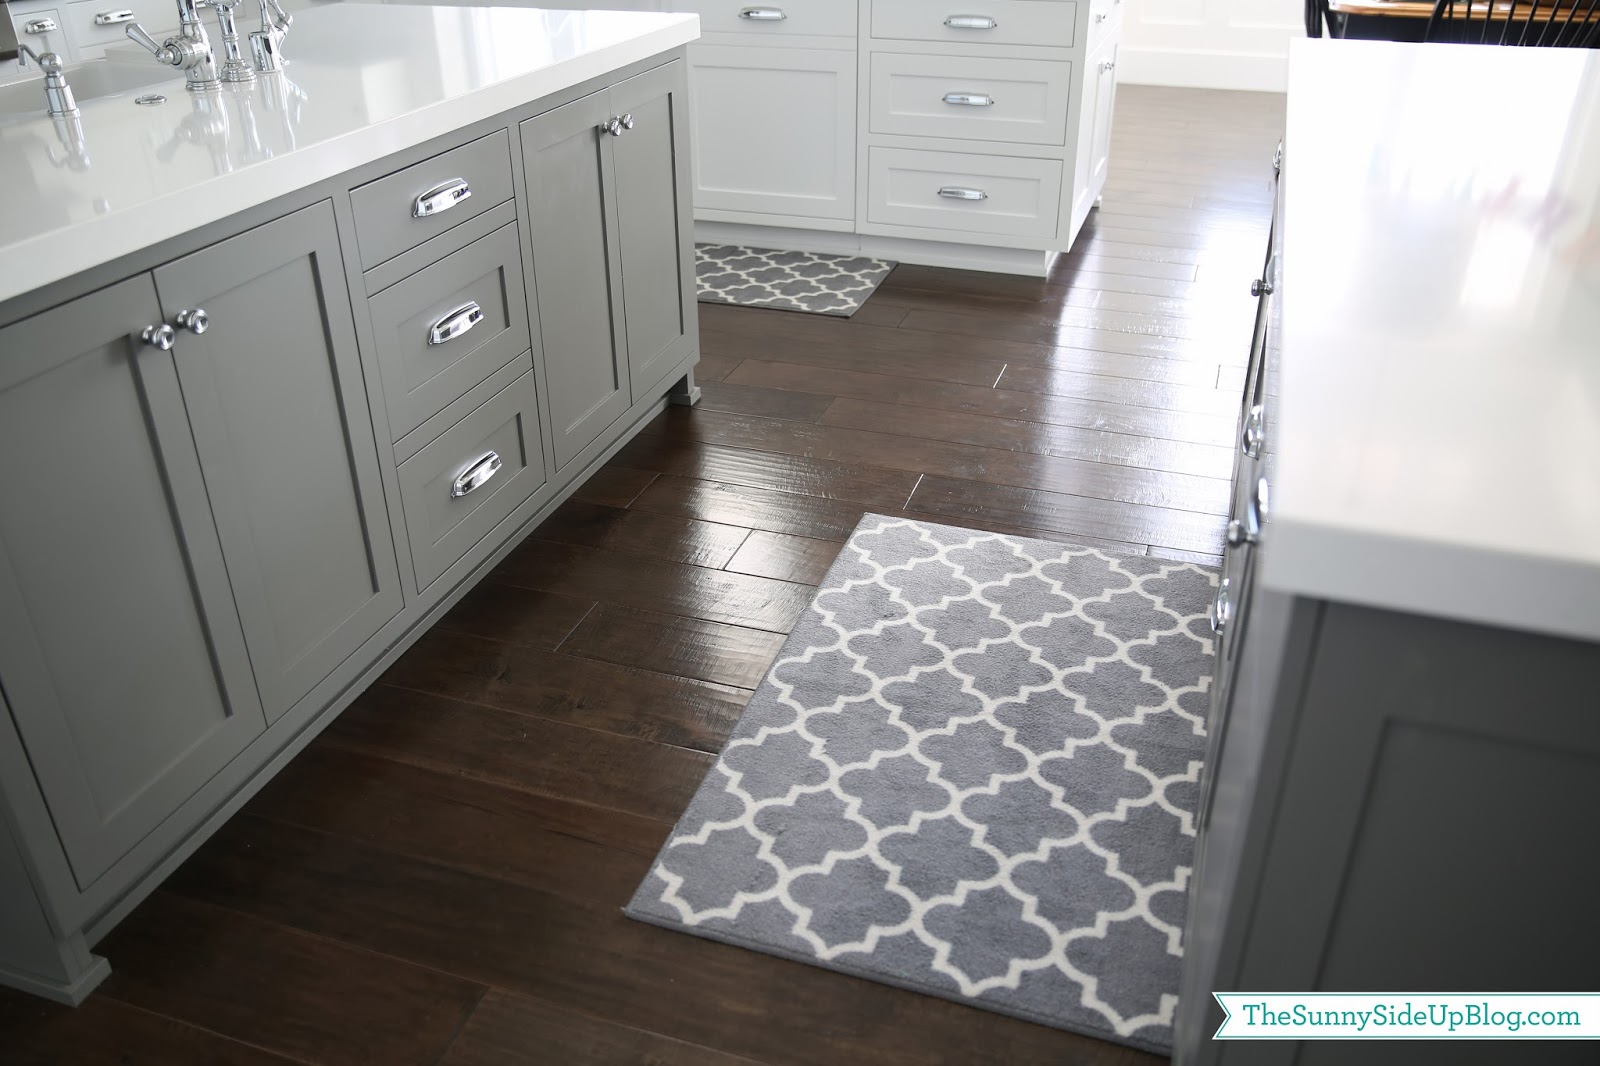 Target Kitchen Island White Priorities And New Kitchen Rugs - The Sunny Side Up Blog